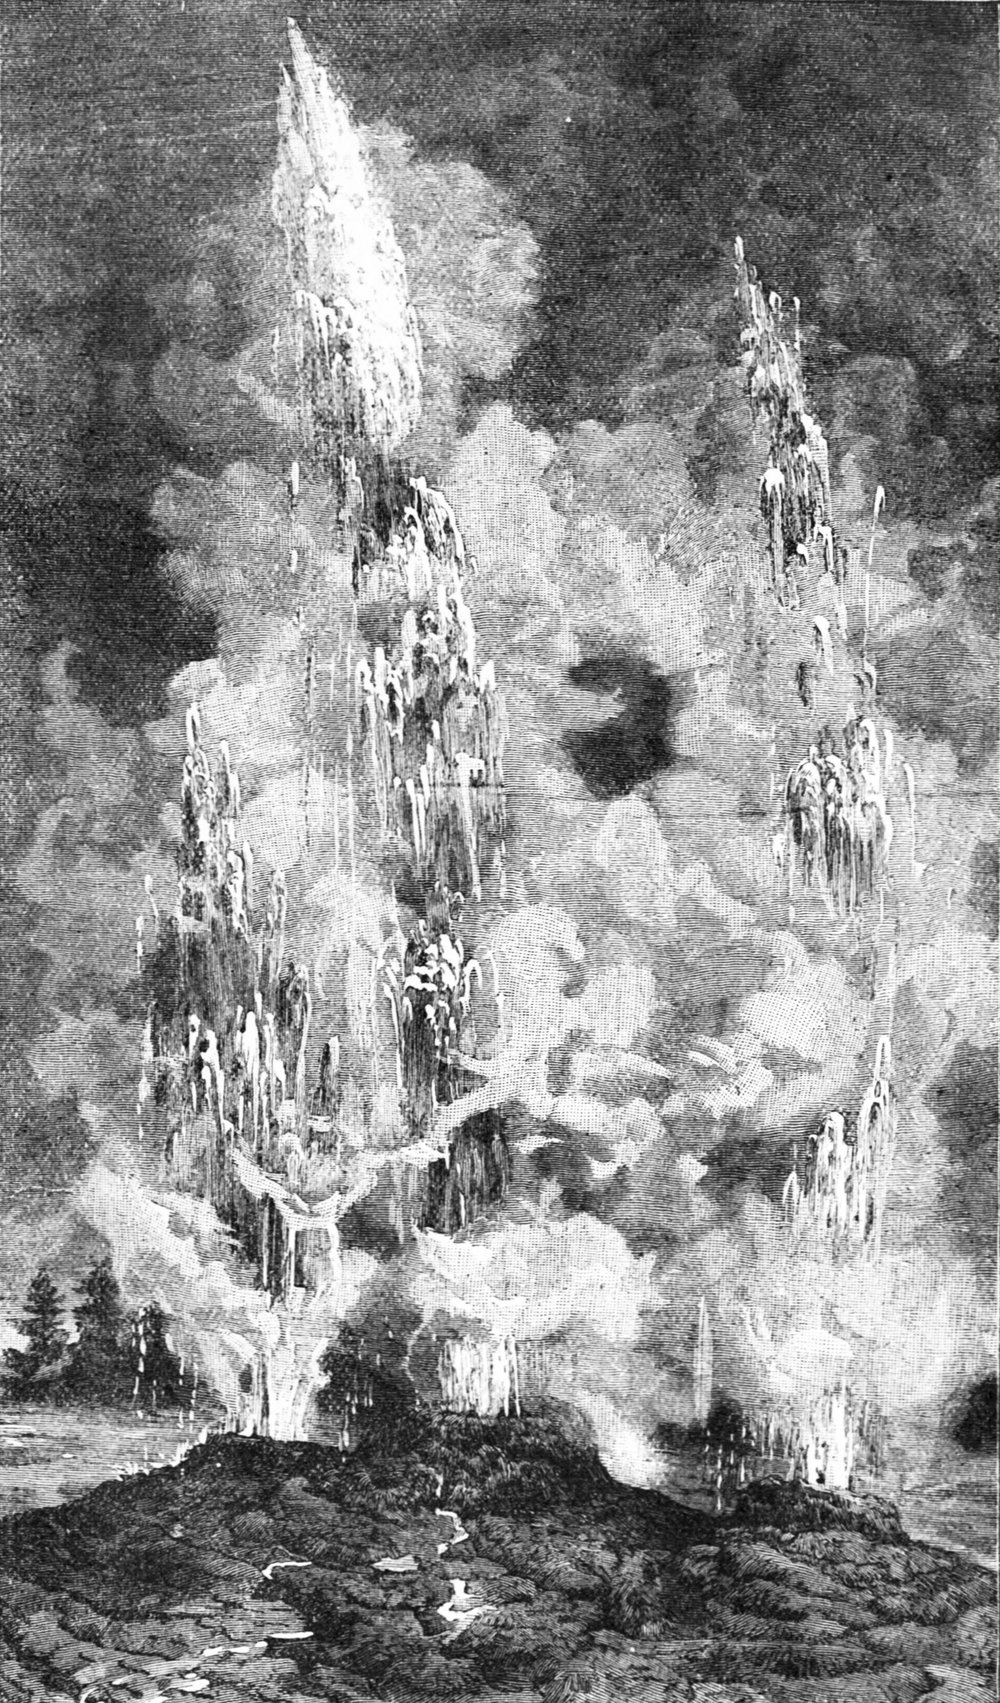 Fig. 6.—Eruption of the Union Geyser in the Yellowstone National Park, August, 1878.